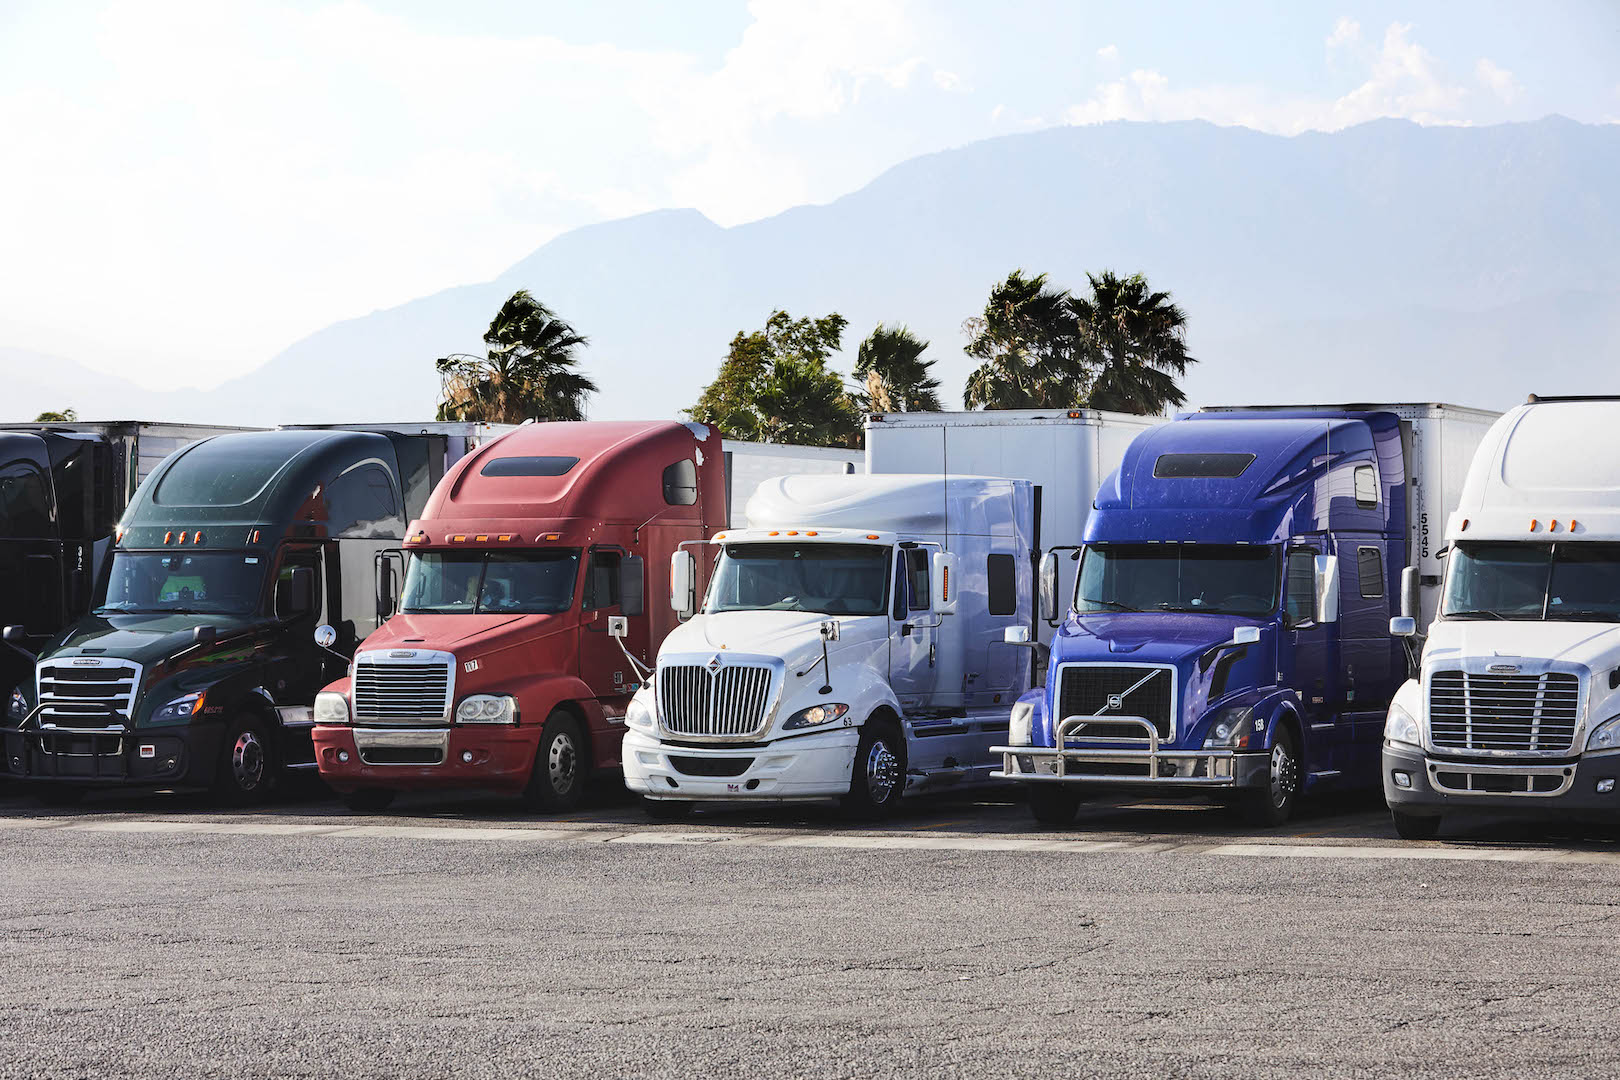 Uber Freight, which connects truck drivers with shippers that need cargo delivered, is acquiring Transplace for approximately $2.25 billion from its current owner, private equity firm TPG Capital.